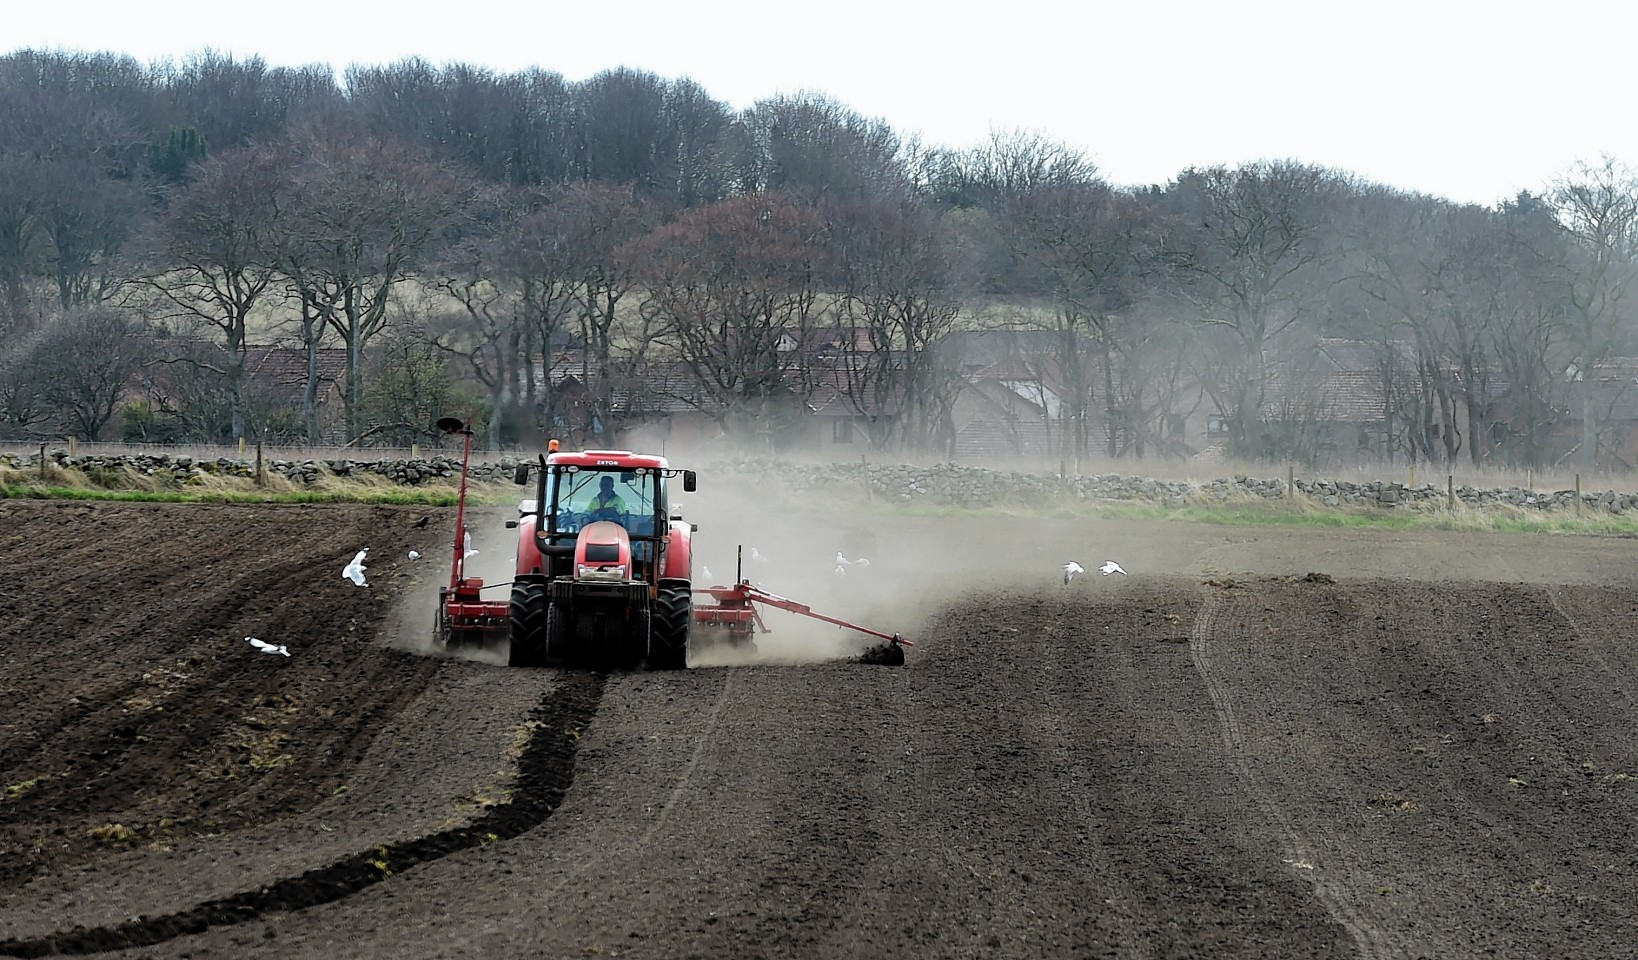 The bank said it wanted to support new entrants to farming